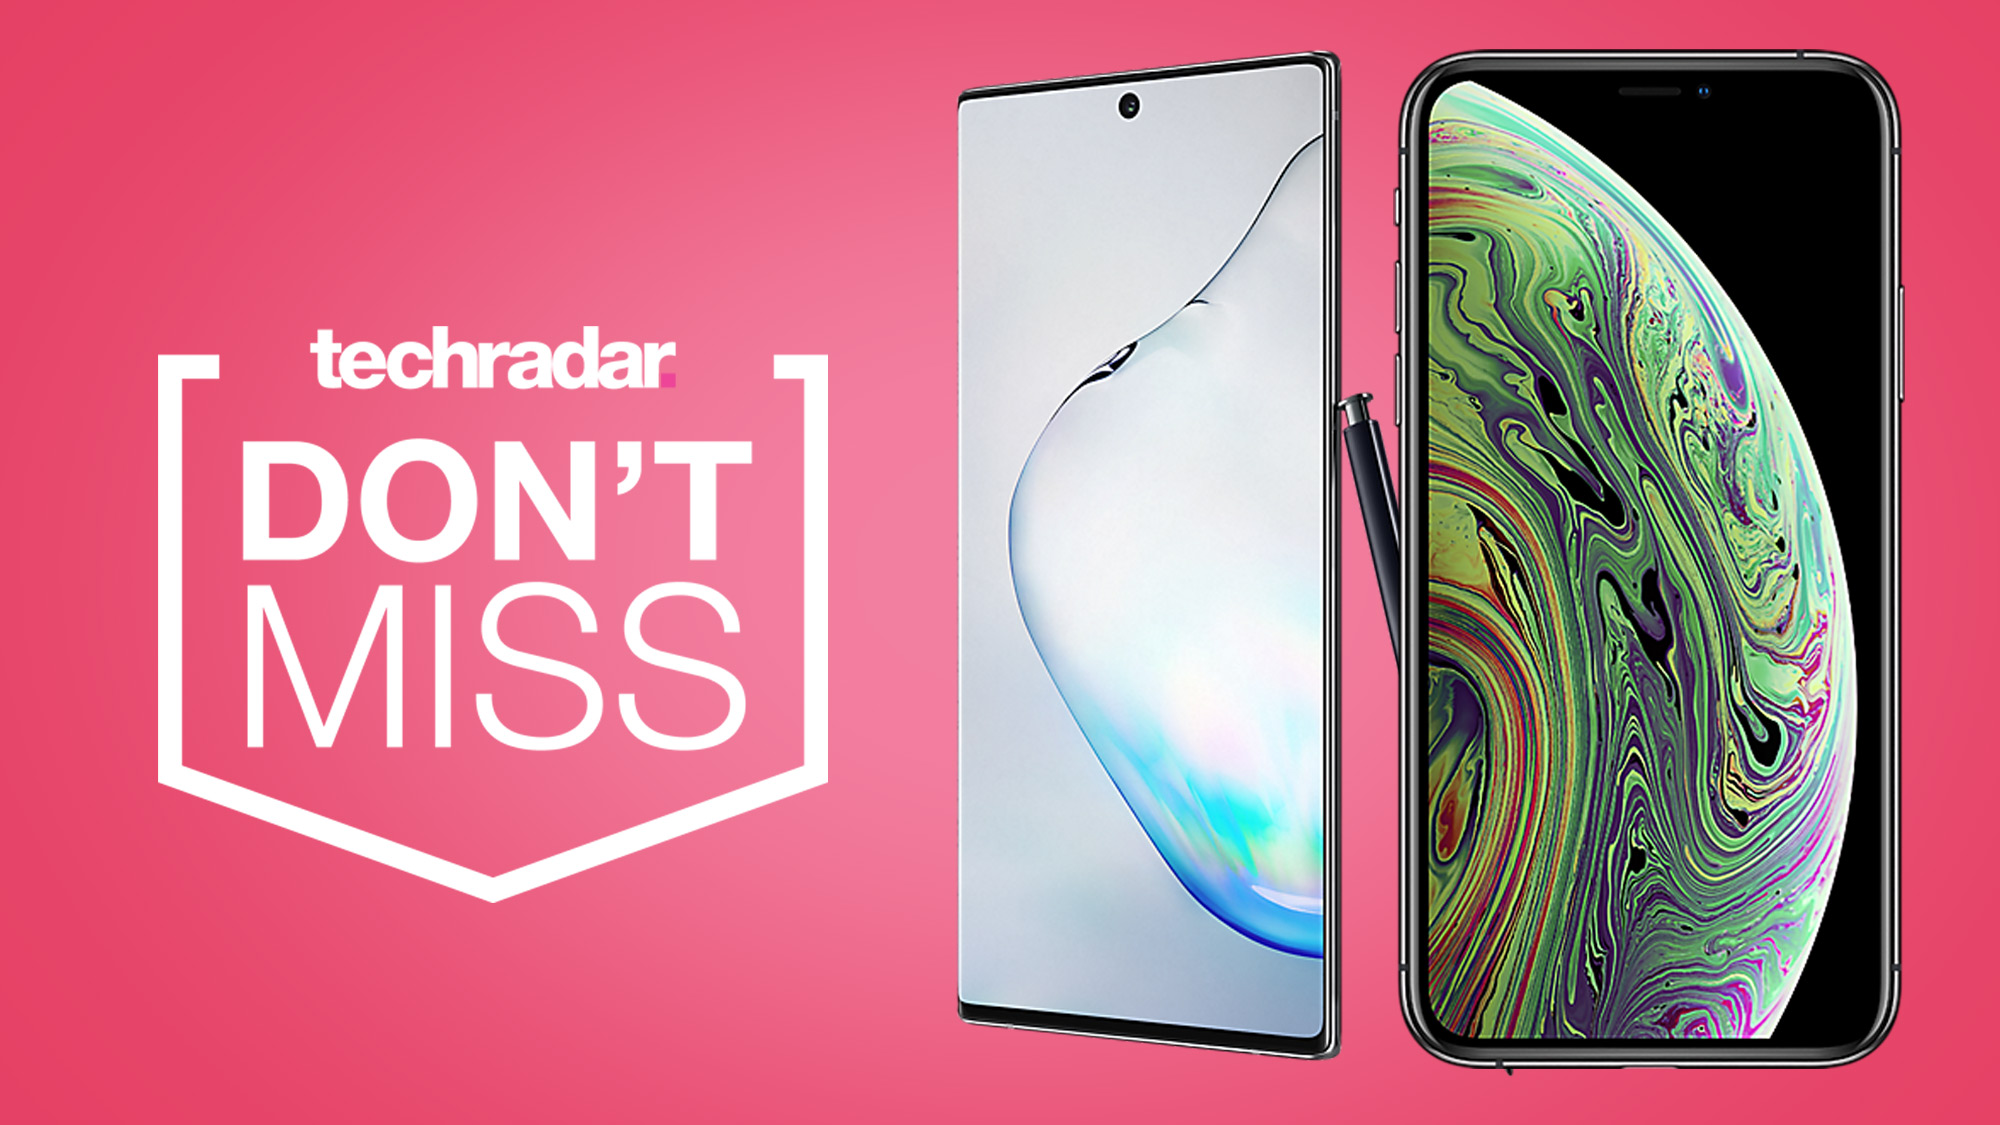 Save up to £370 on a range of top mobile phone deals with Very's Easter sale